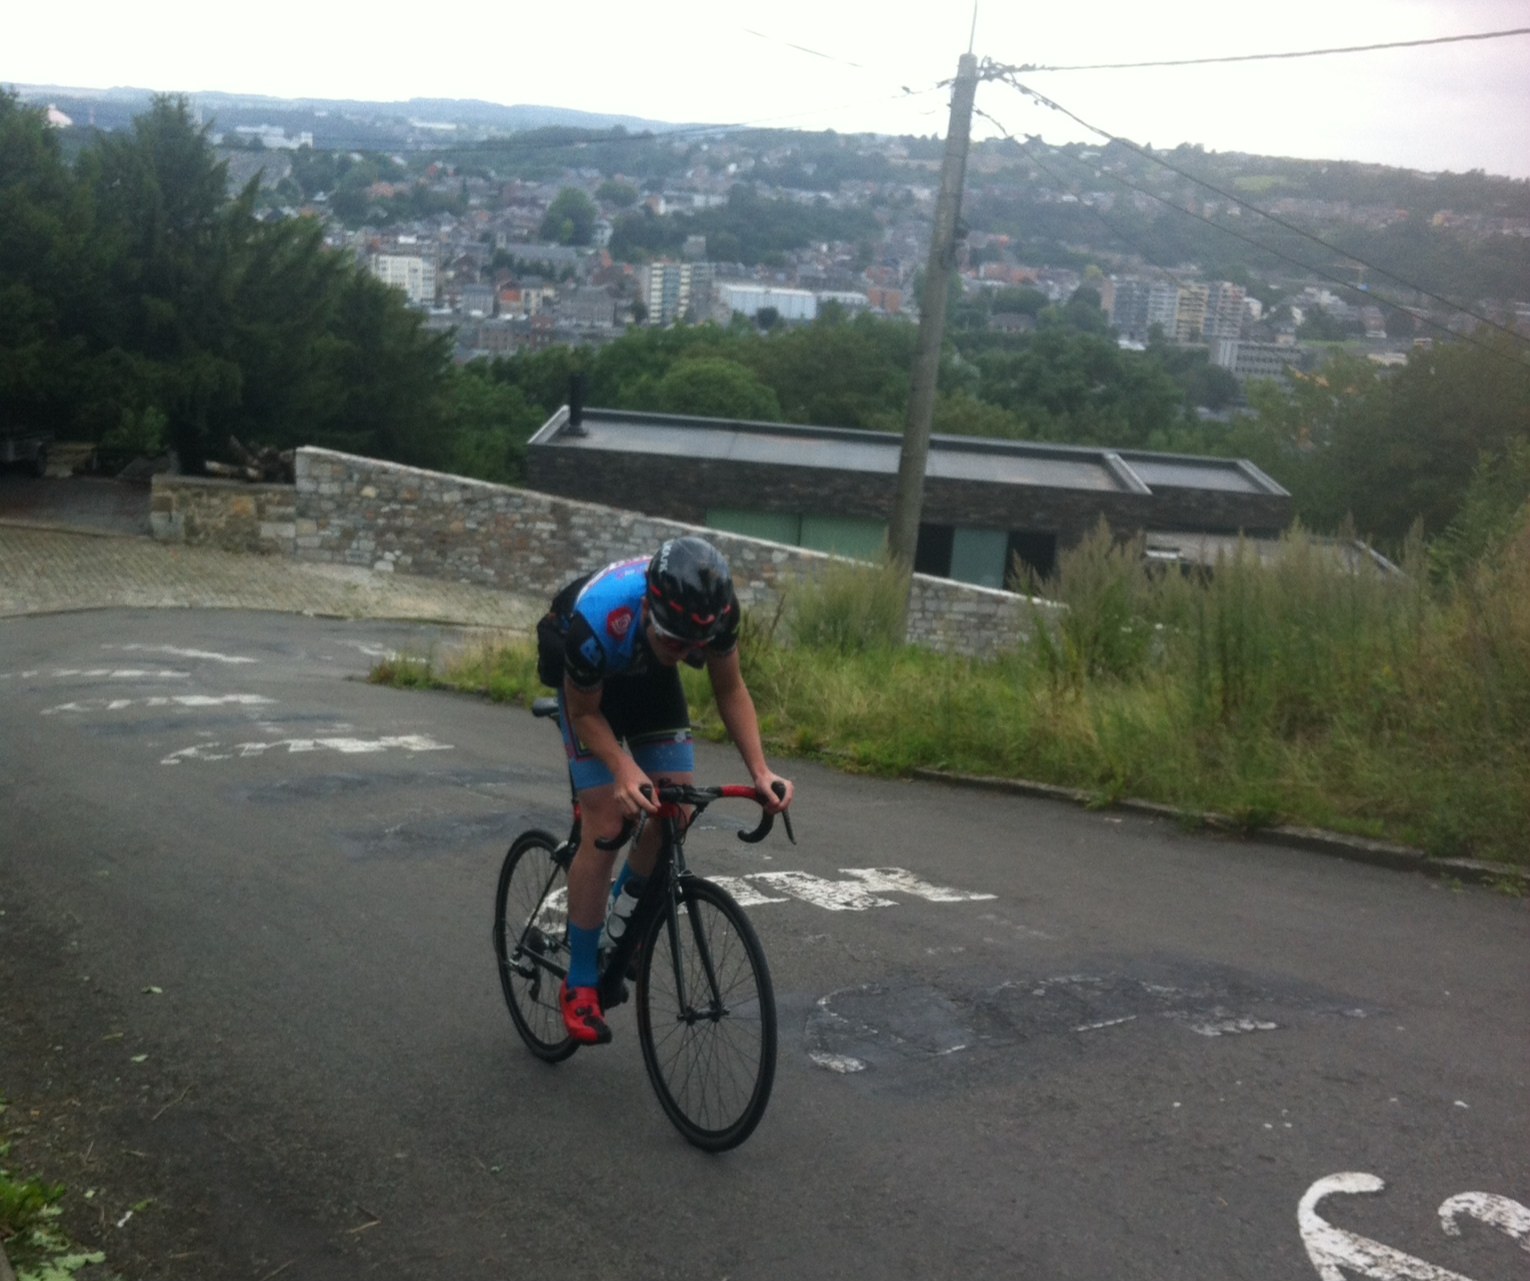 Mur (Wall) of Huy with the town in the background going through turn 1 @ 26%